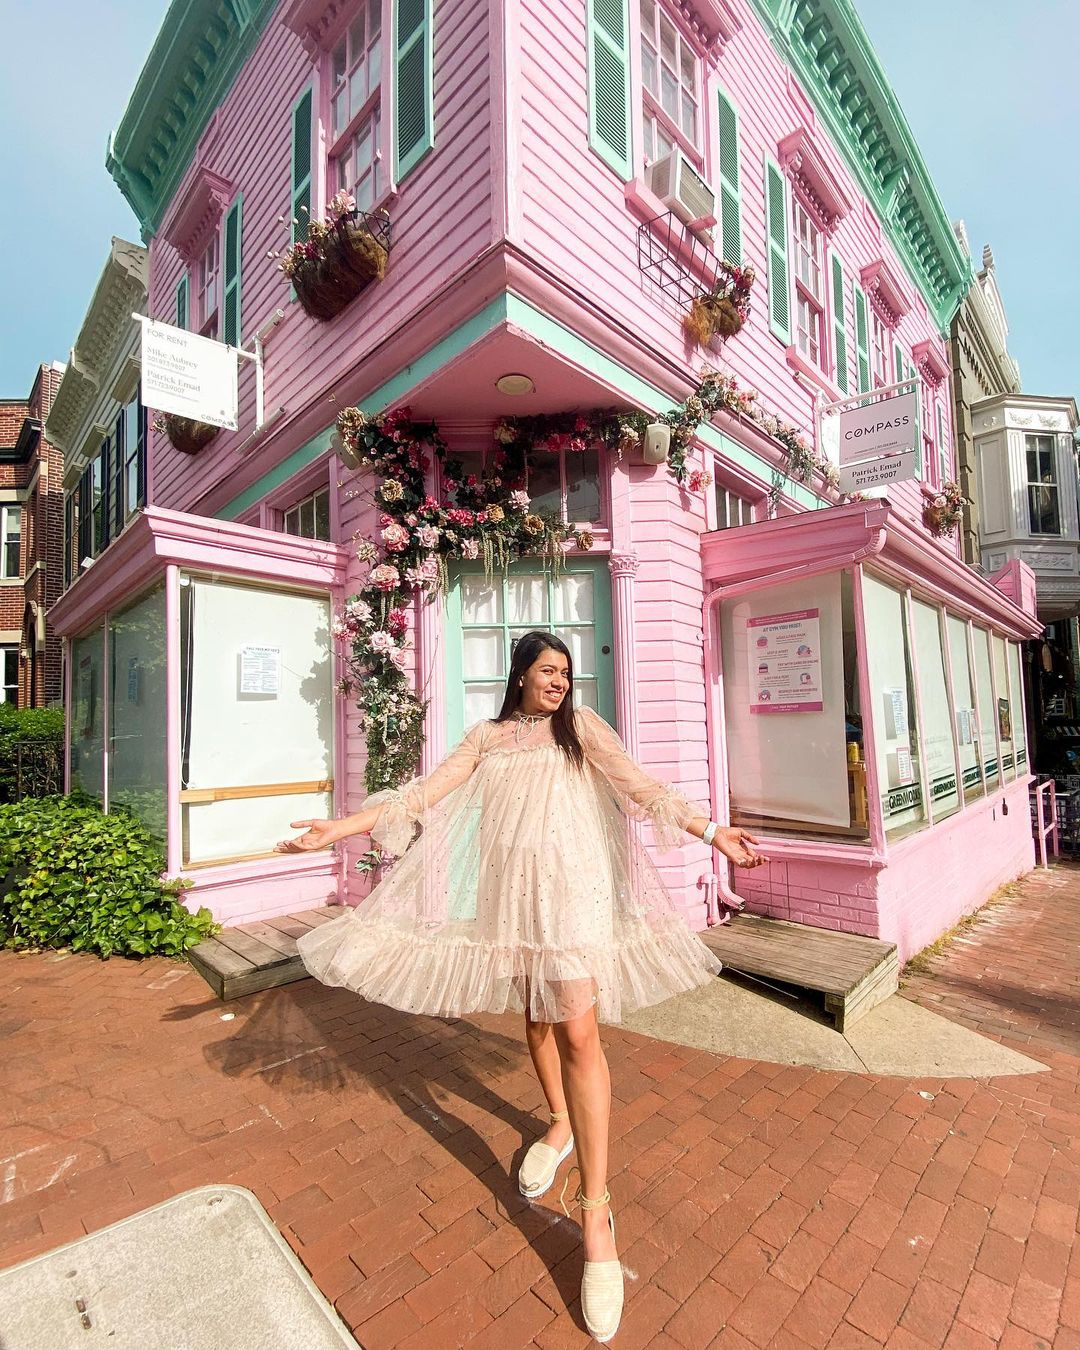 A woman in a beige dress in front of a house with pink and green siding.